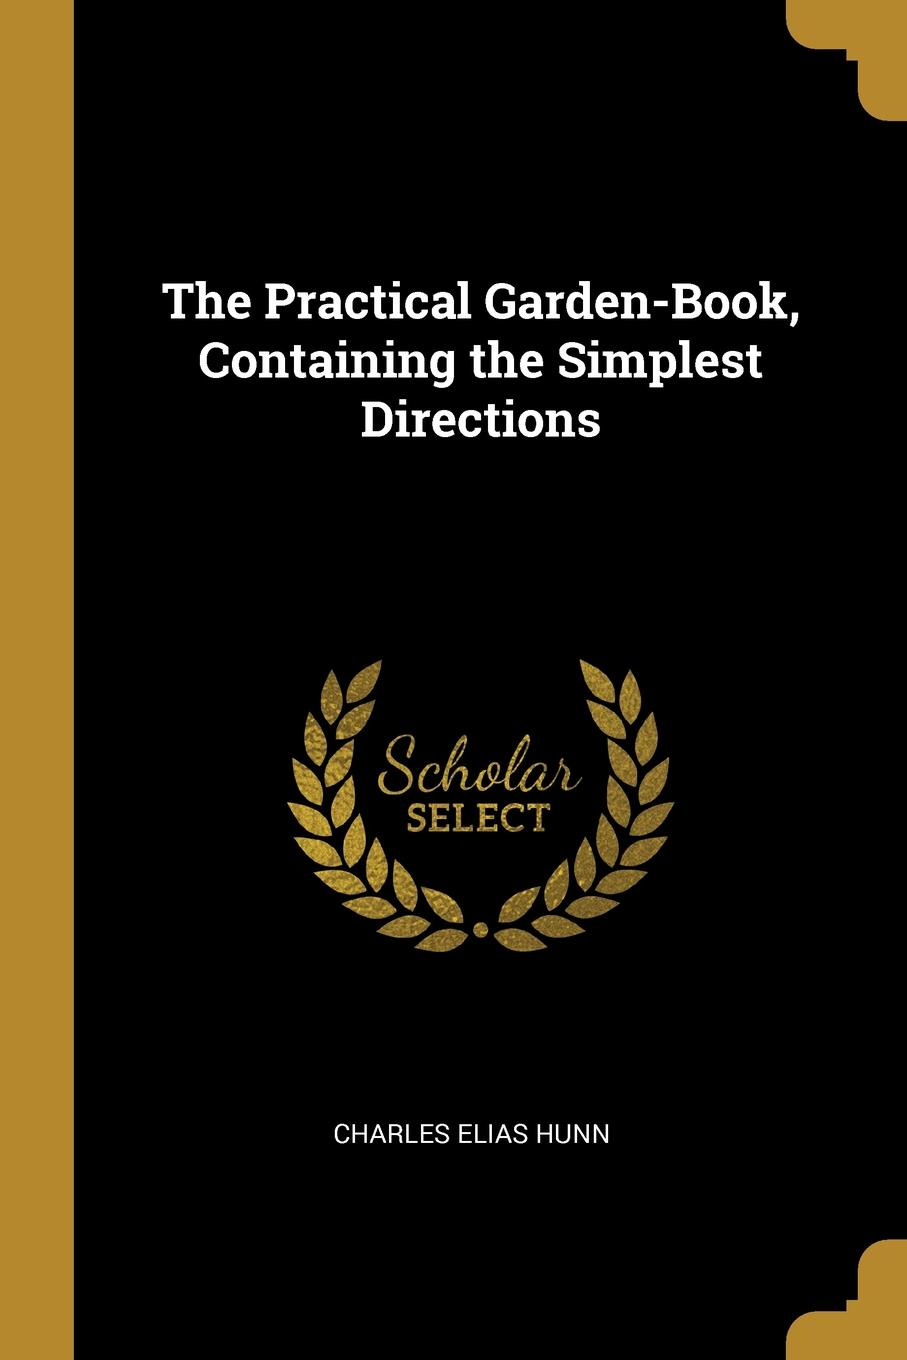 Charles Elias Hunn. The Practical Garden-Book, Containing the Simplest Directions